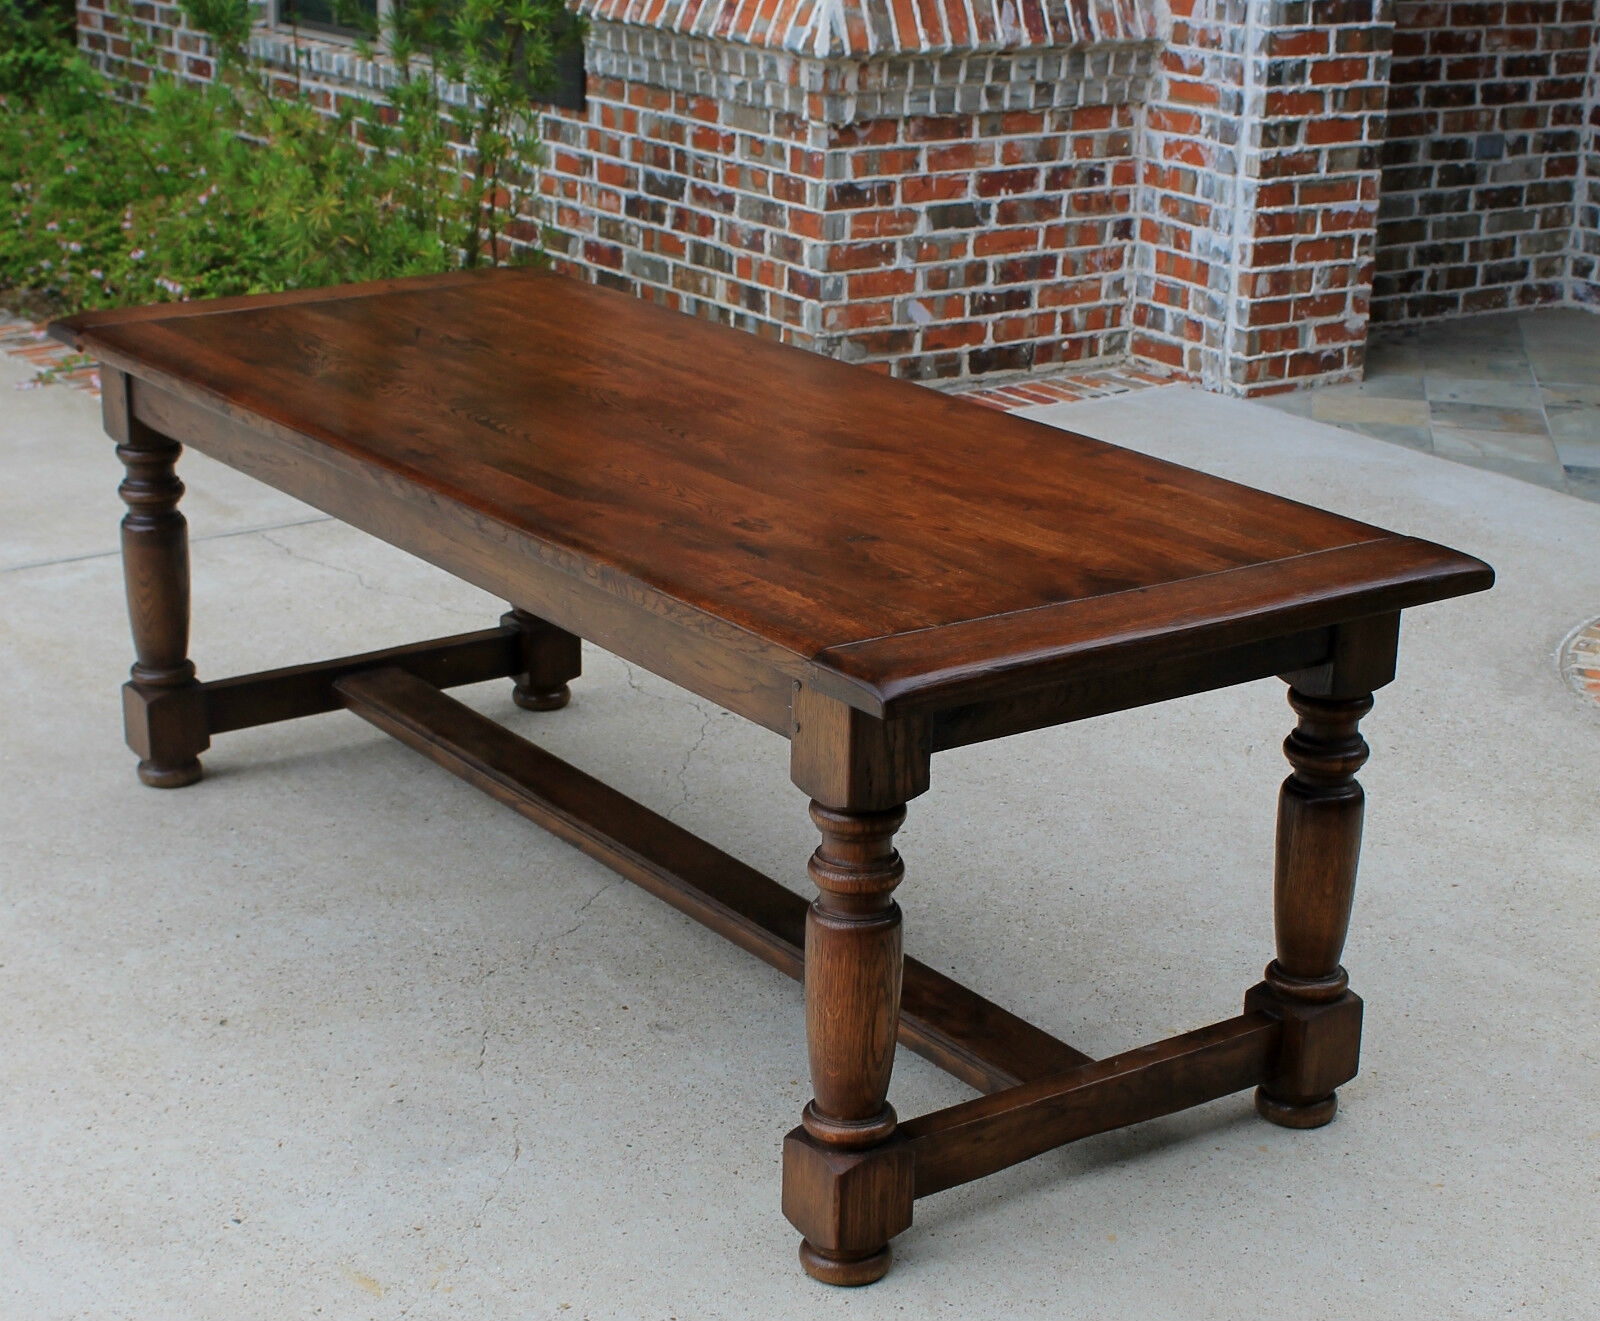 Antique French Oak Farm Farmhouse Dining Table Desk Library Table LARGE Pegge